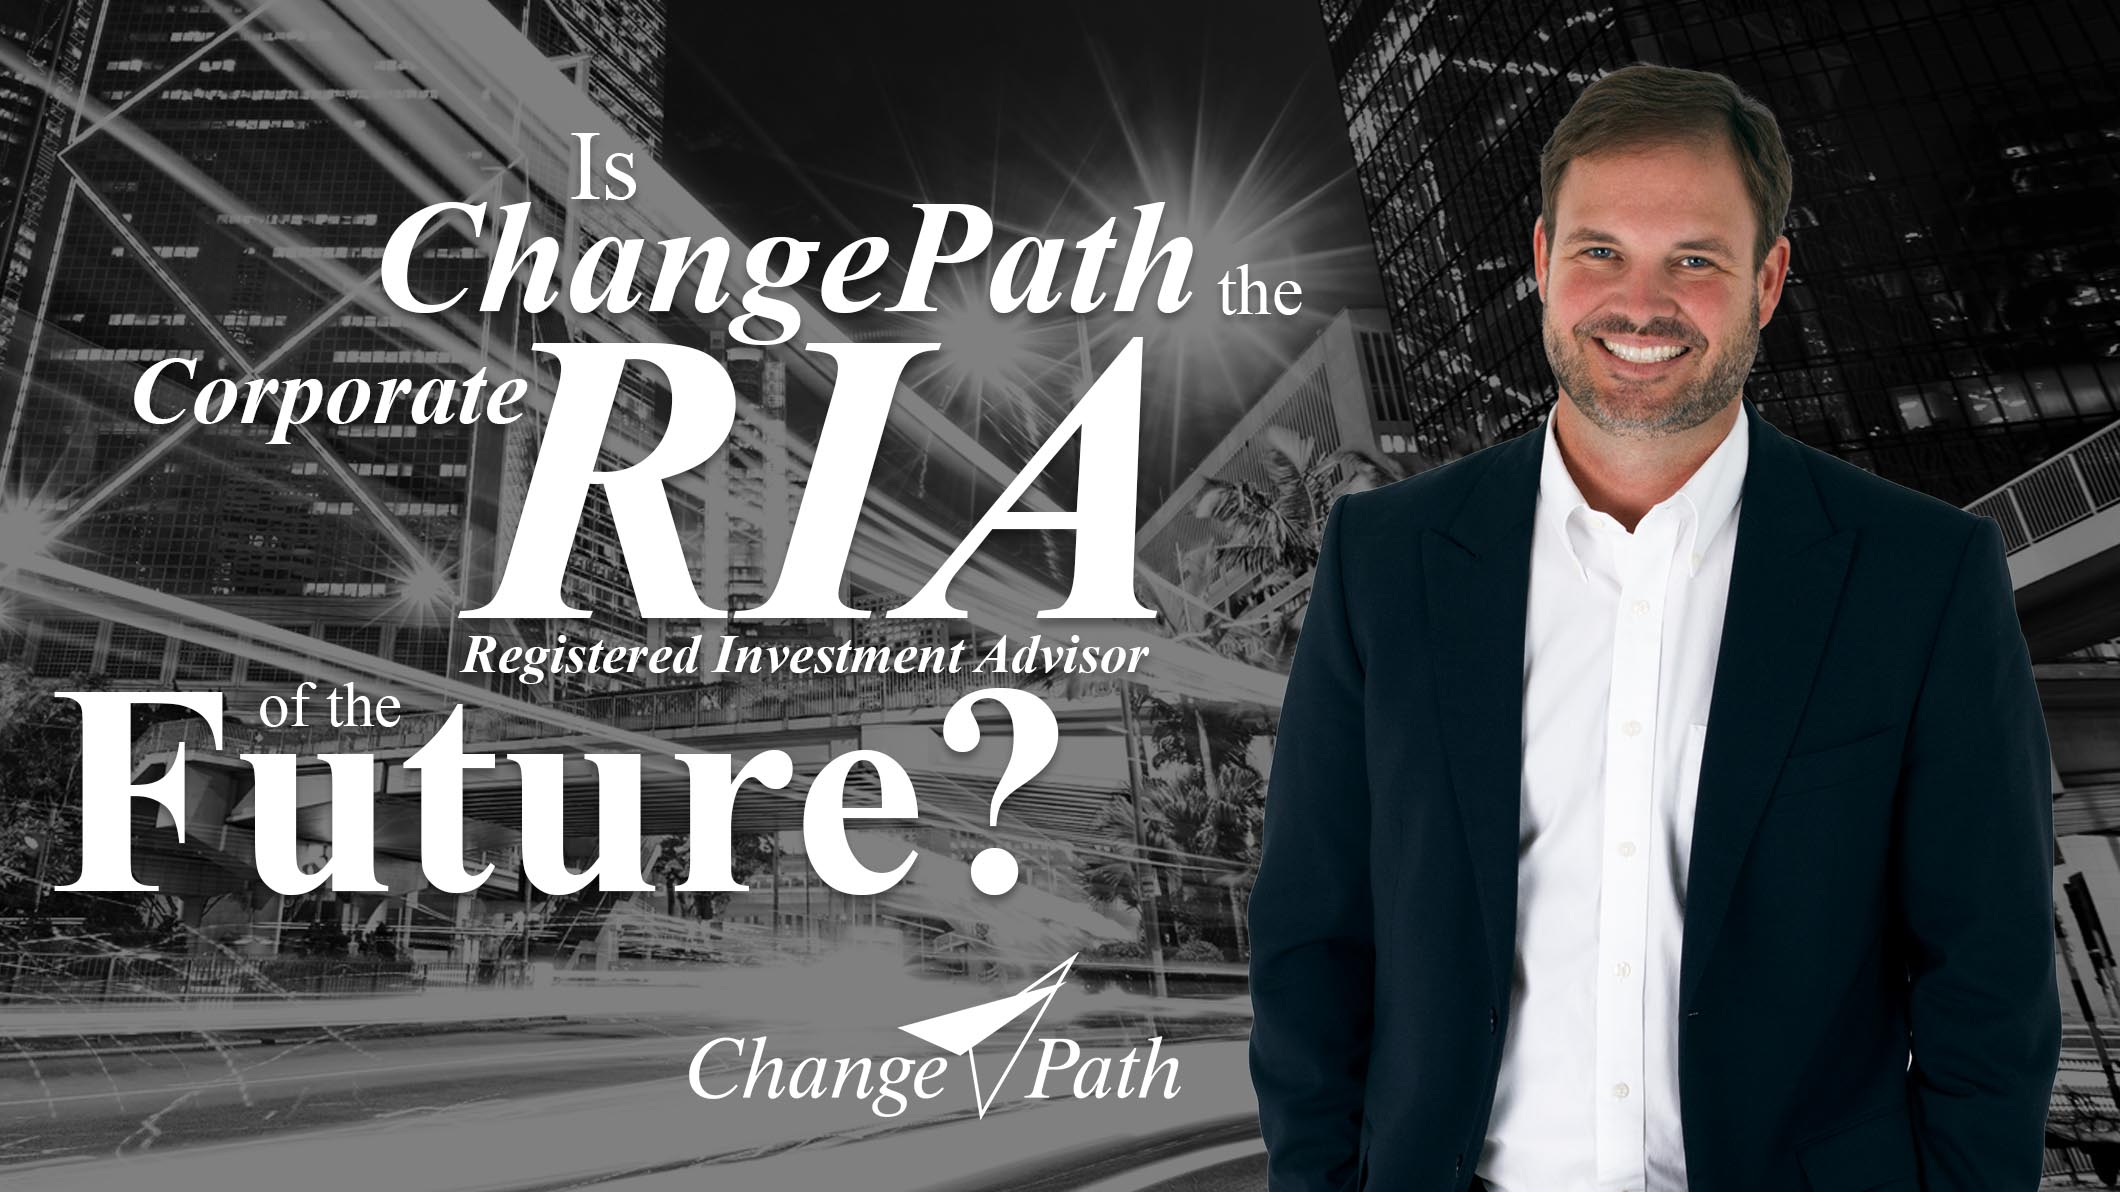 Cory Lagerstrom, J.D., President and Principal of ChangePath